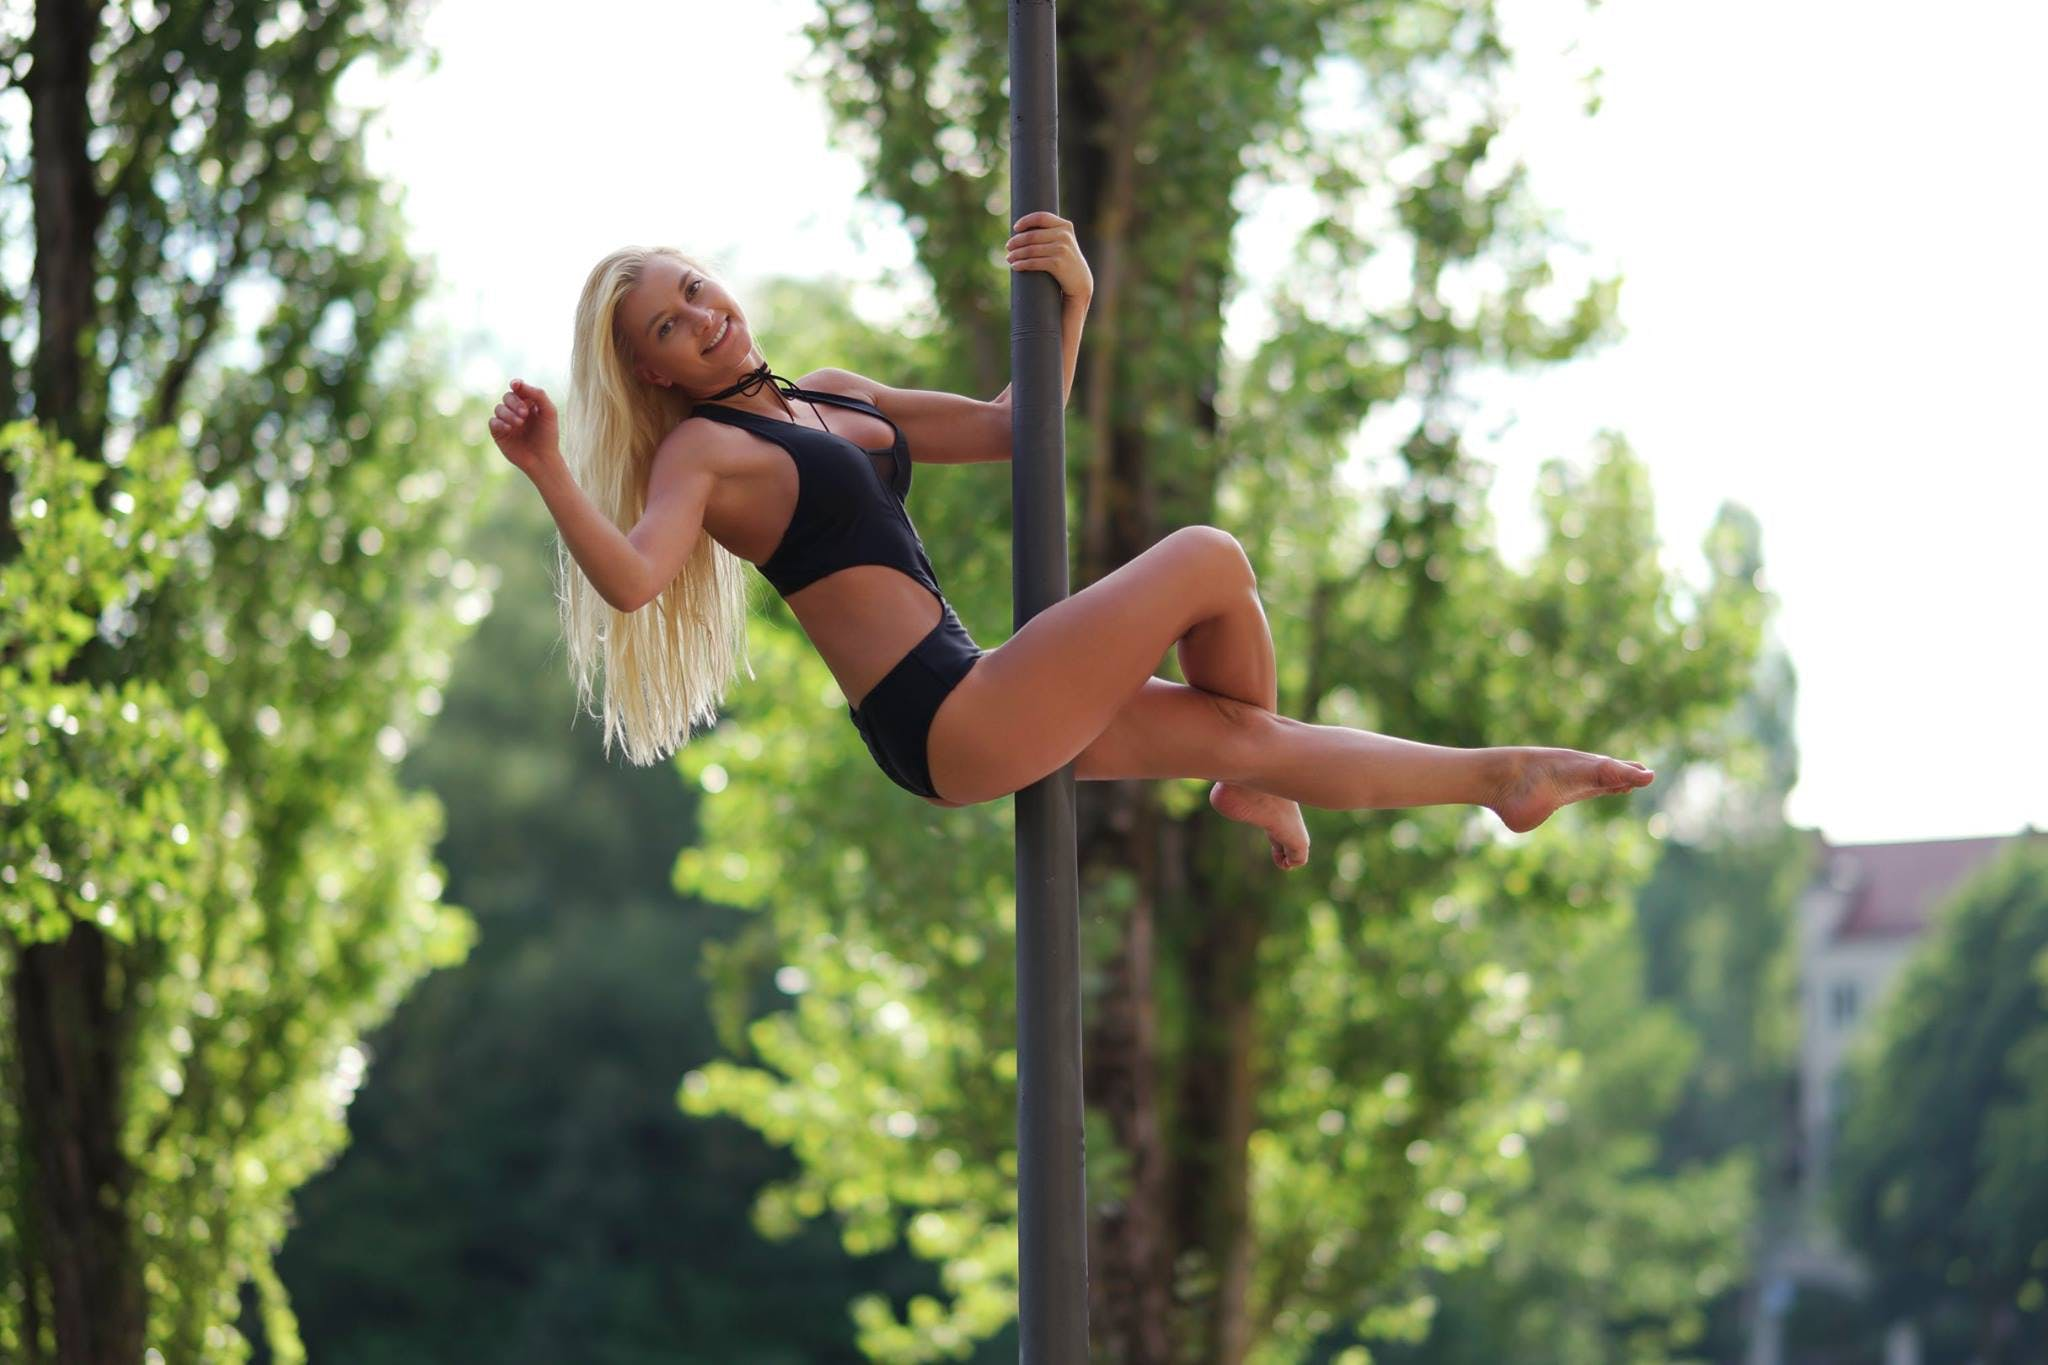 7 Unexpected Health Benefits of Pole Dancing - Woman Dancing on Pole